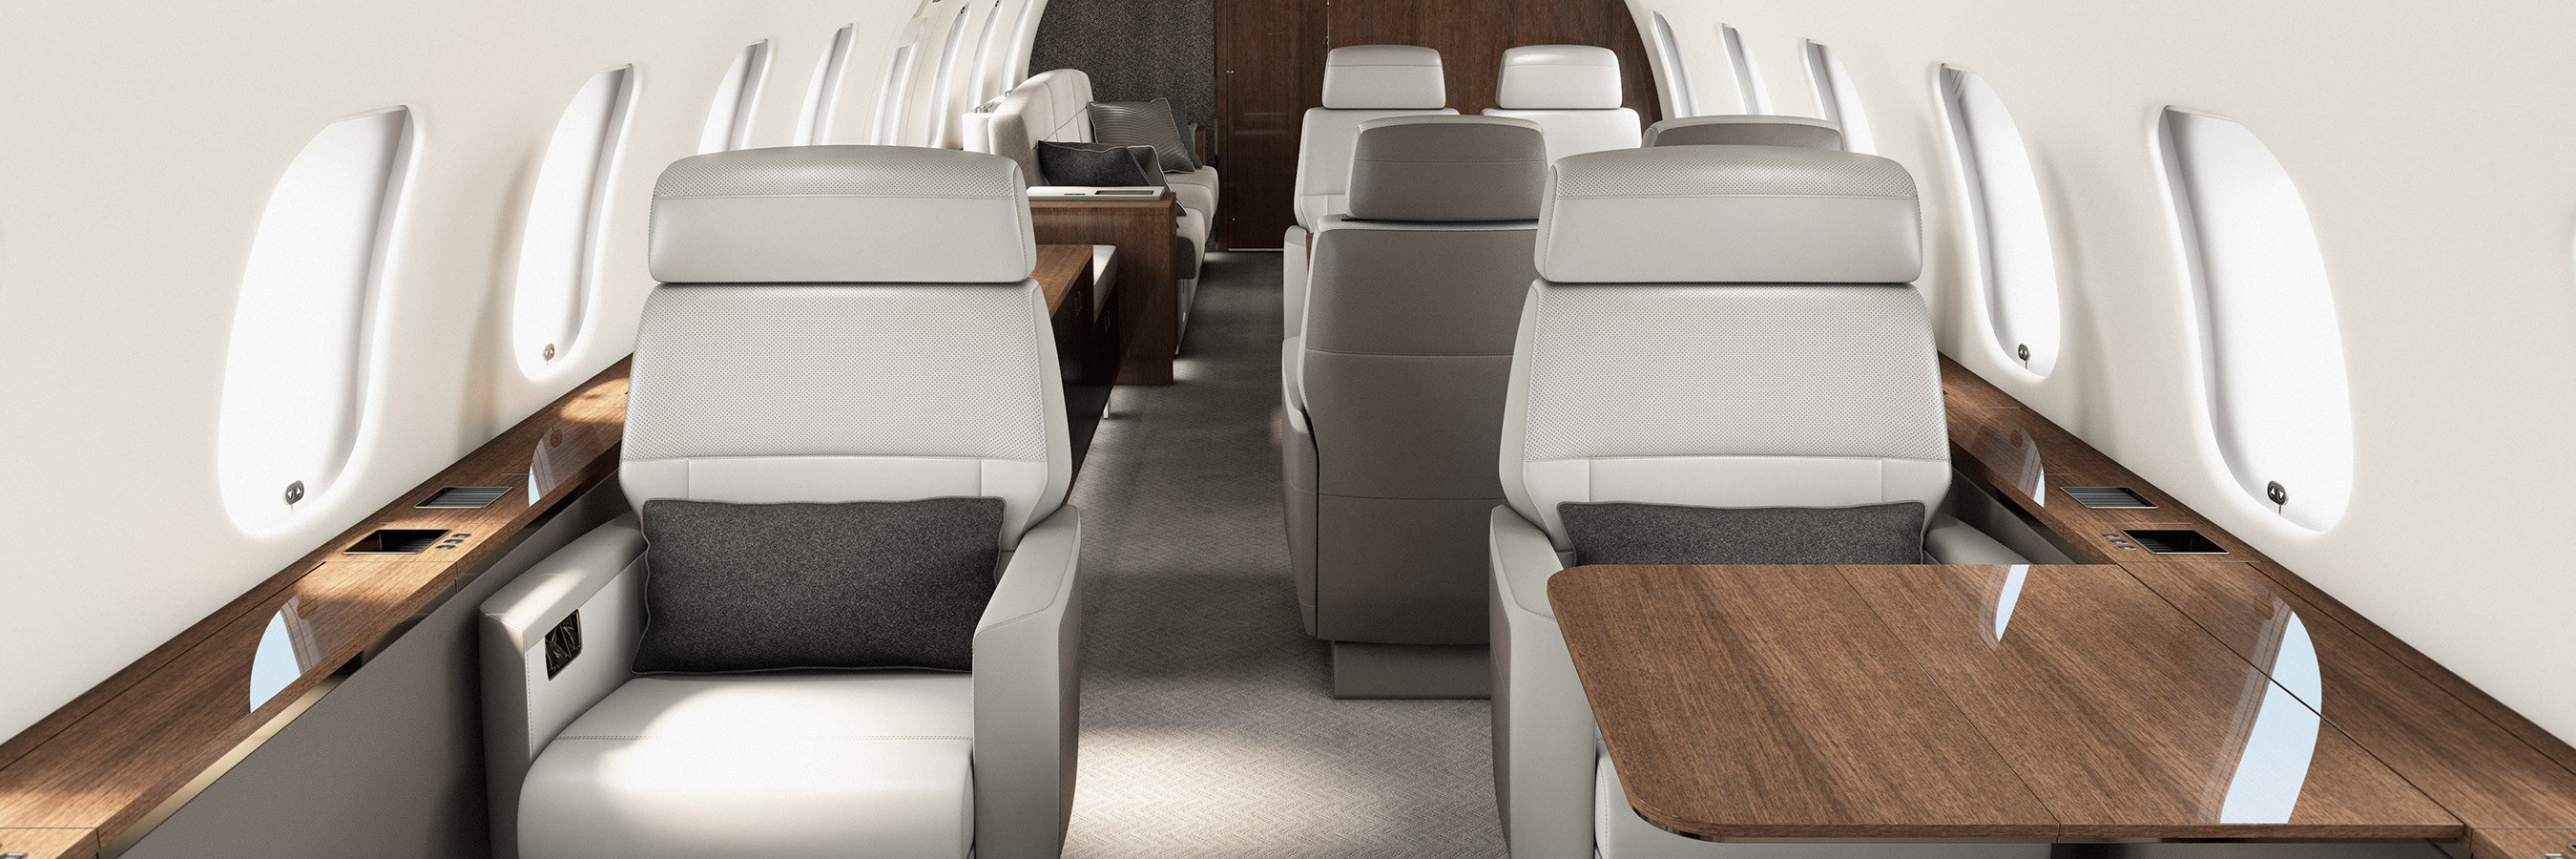 Global 5000 exceptional cabin